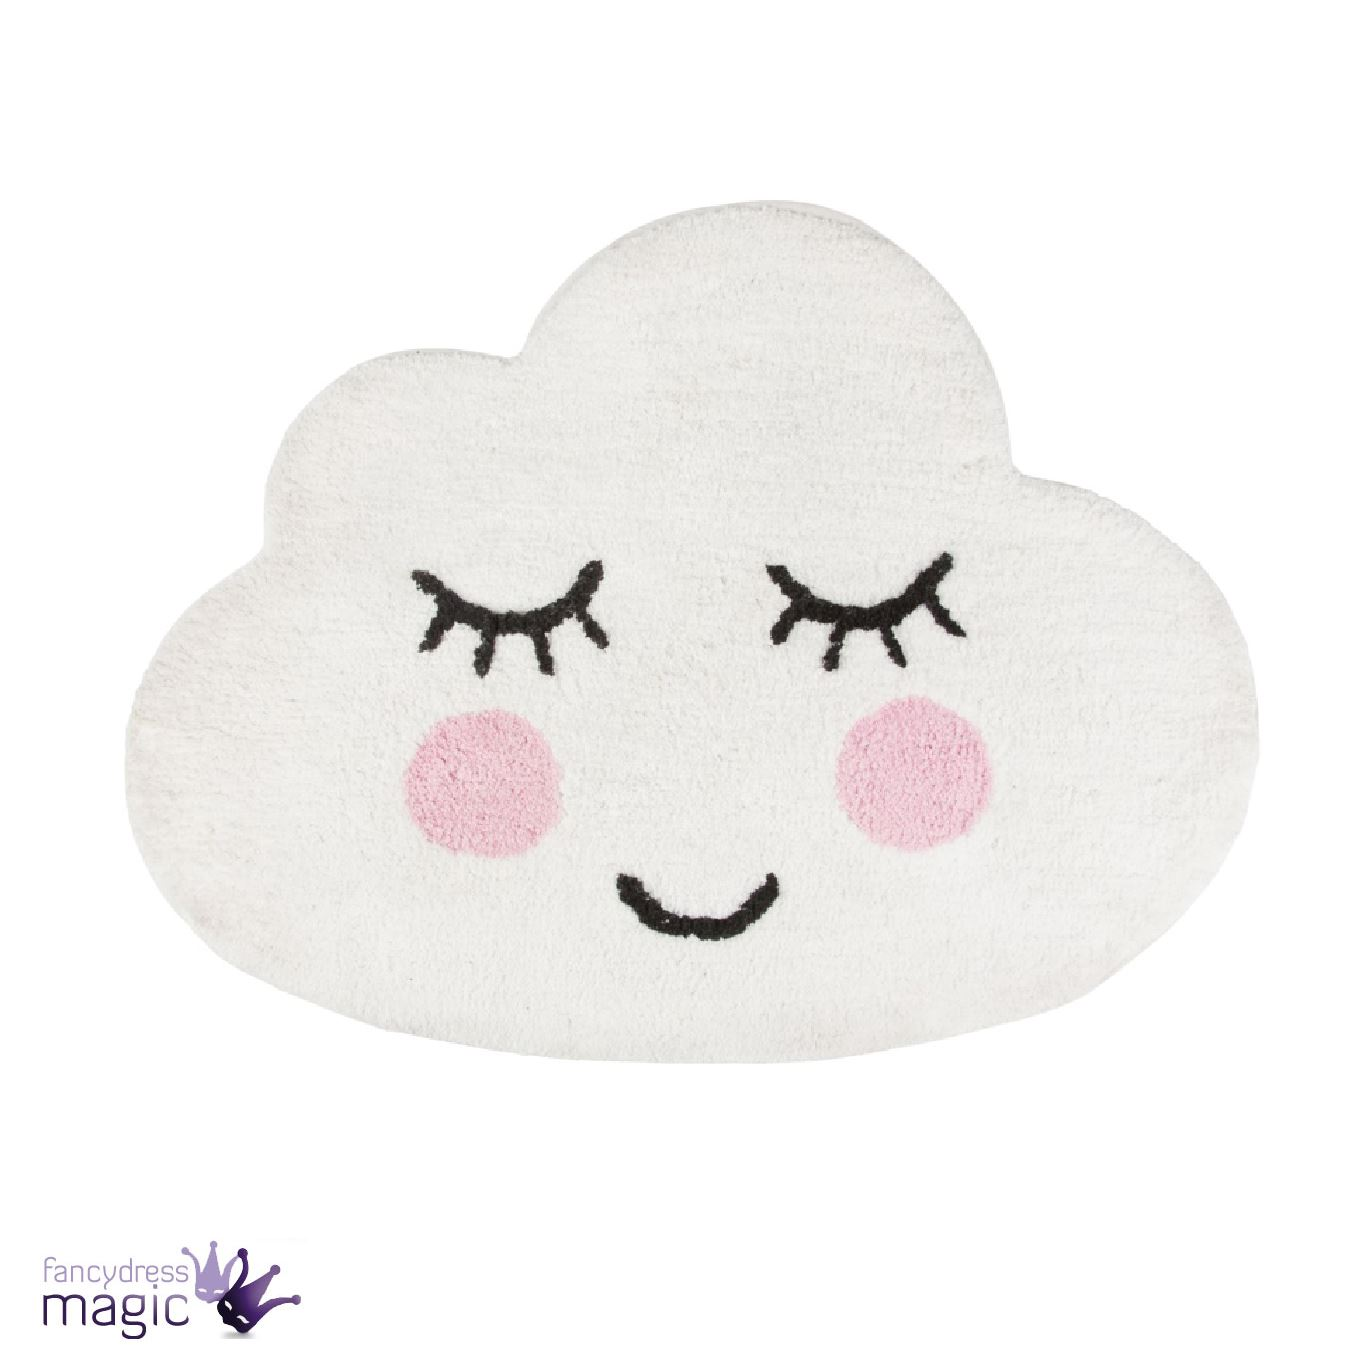 Sass-amp-Belle-Cotton-Mat-Rug-Kawaii-Kids-Bedroom-Nursery-Bath-Chic-Home-Gift